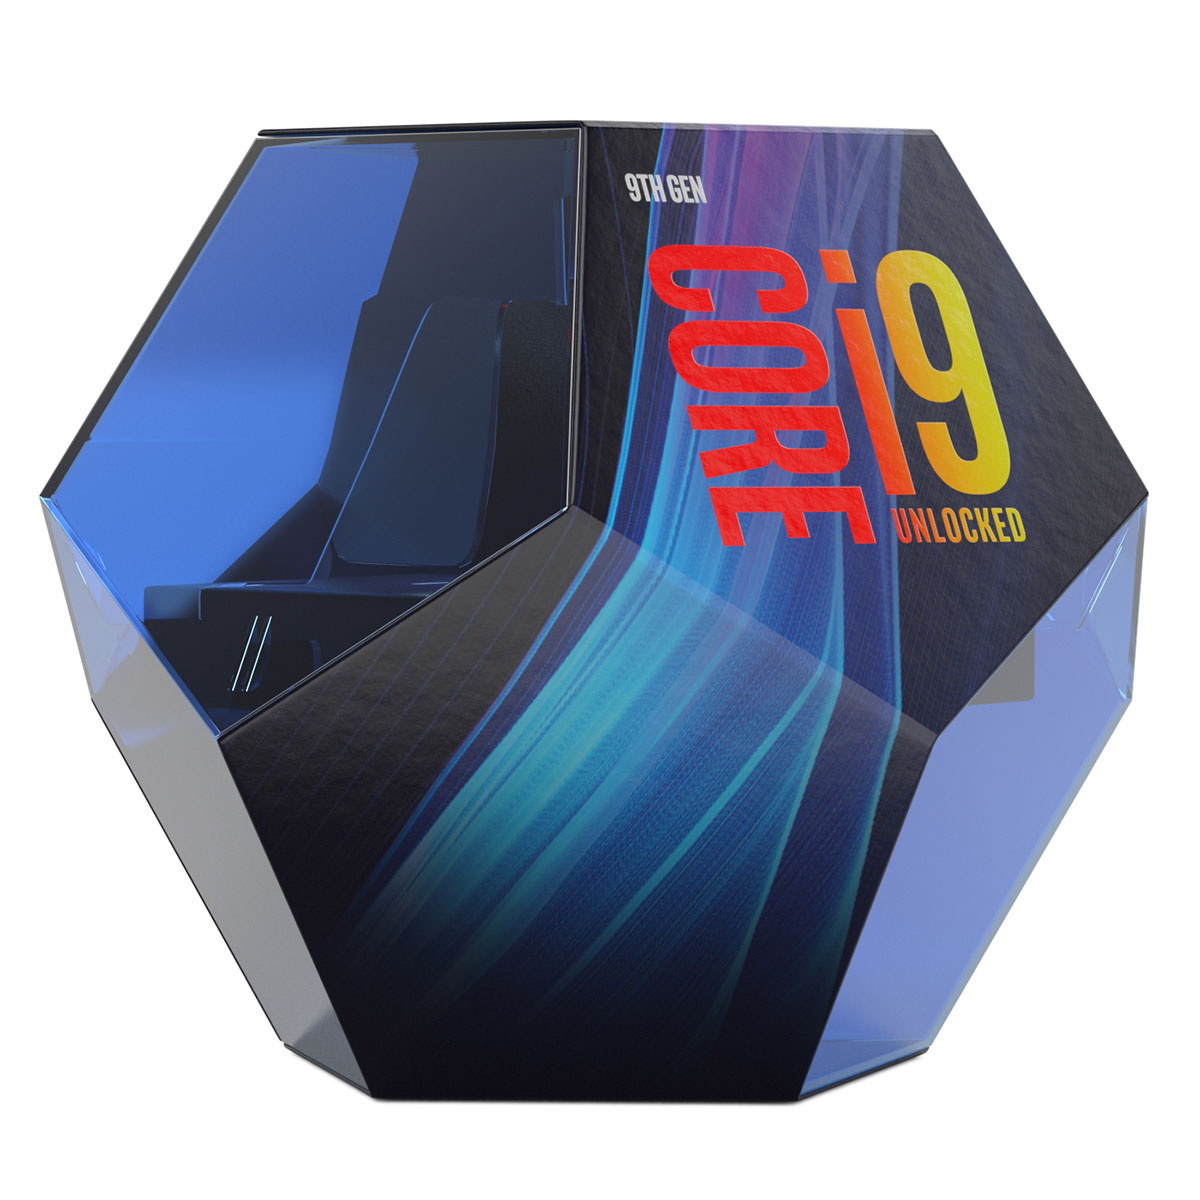 Processeur Intel Core i9 9900K 8- Core (3.60~5.00 GHz) Socket 1151 - Cache 16 Mo (Box), informatique ile de la réunion